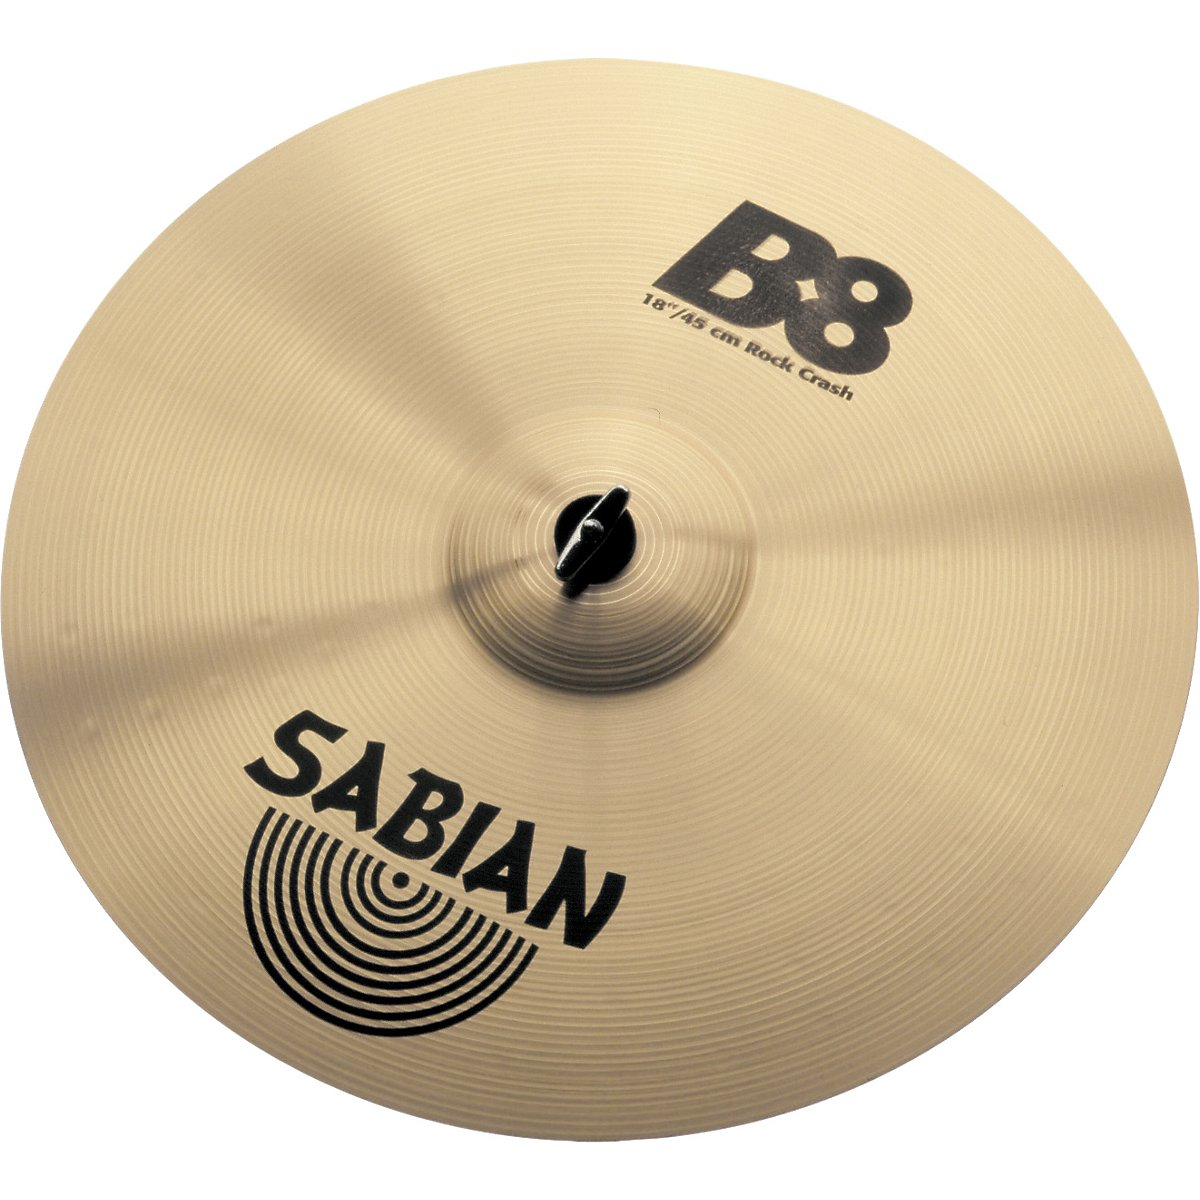 Sabian B8 18 Inch Rock Crash: Amazon ca: Musical Instruments, Stage